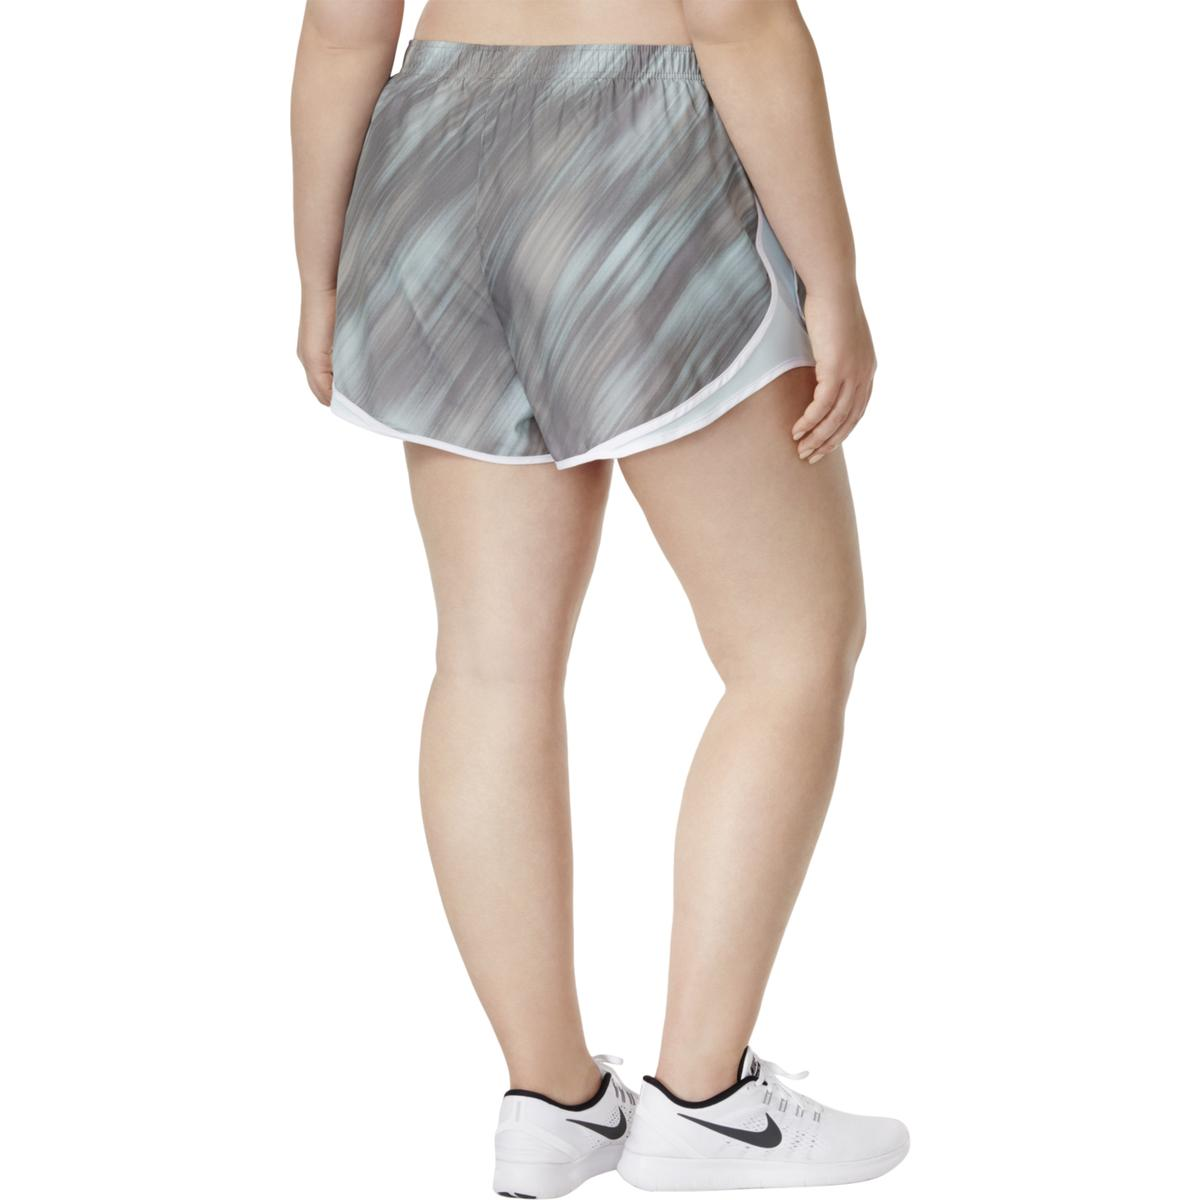 437d86468c2 Nike Womens Plus Size Workout Dri-Fit Tempo Track Athletic Running ...